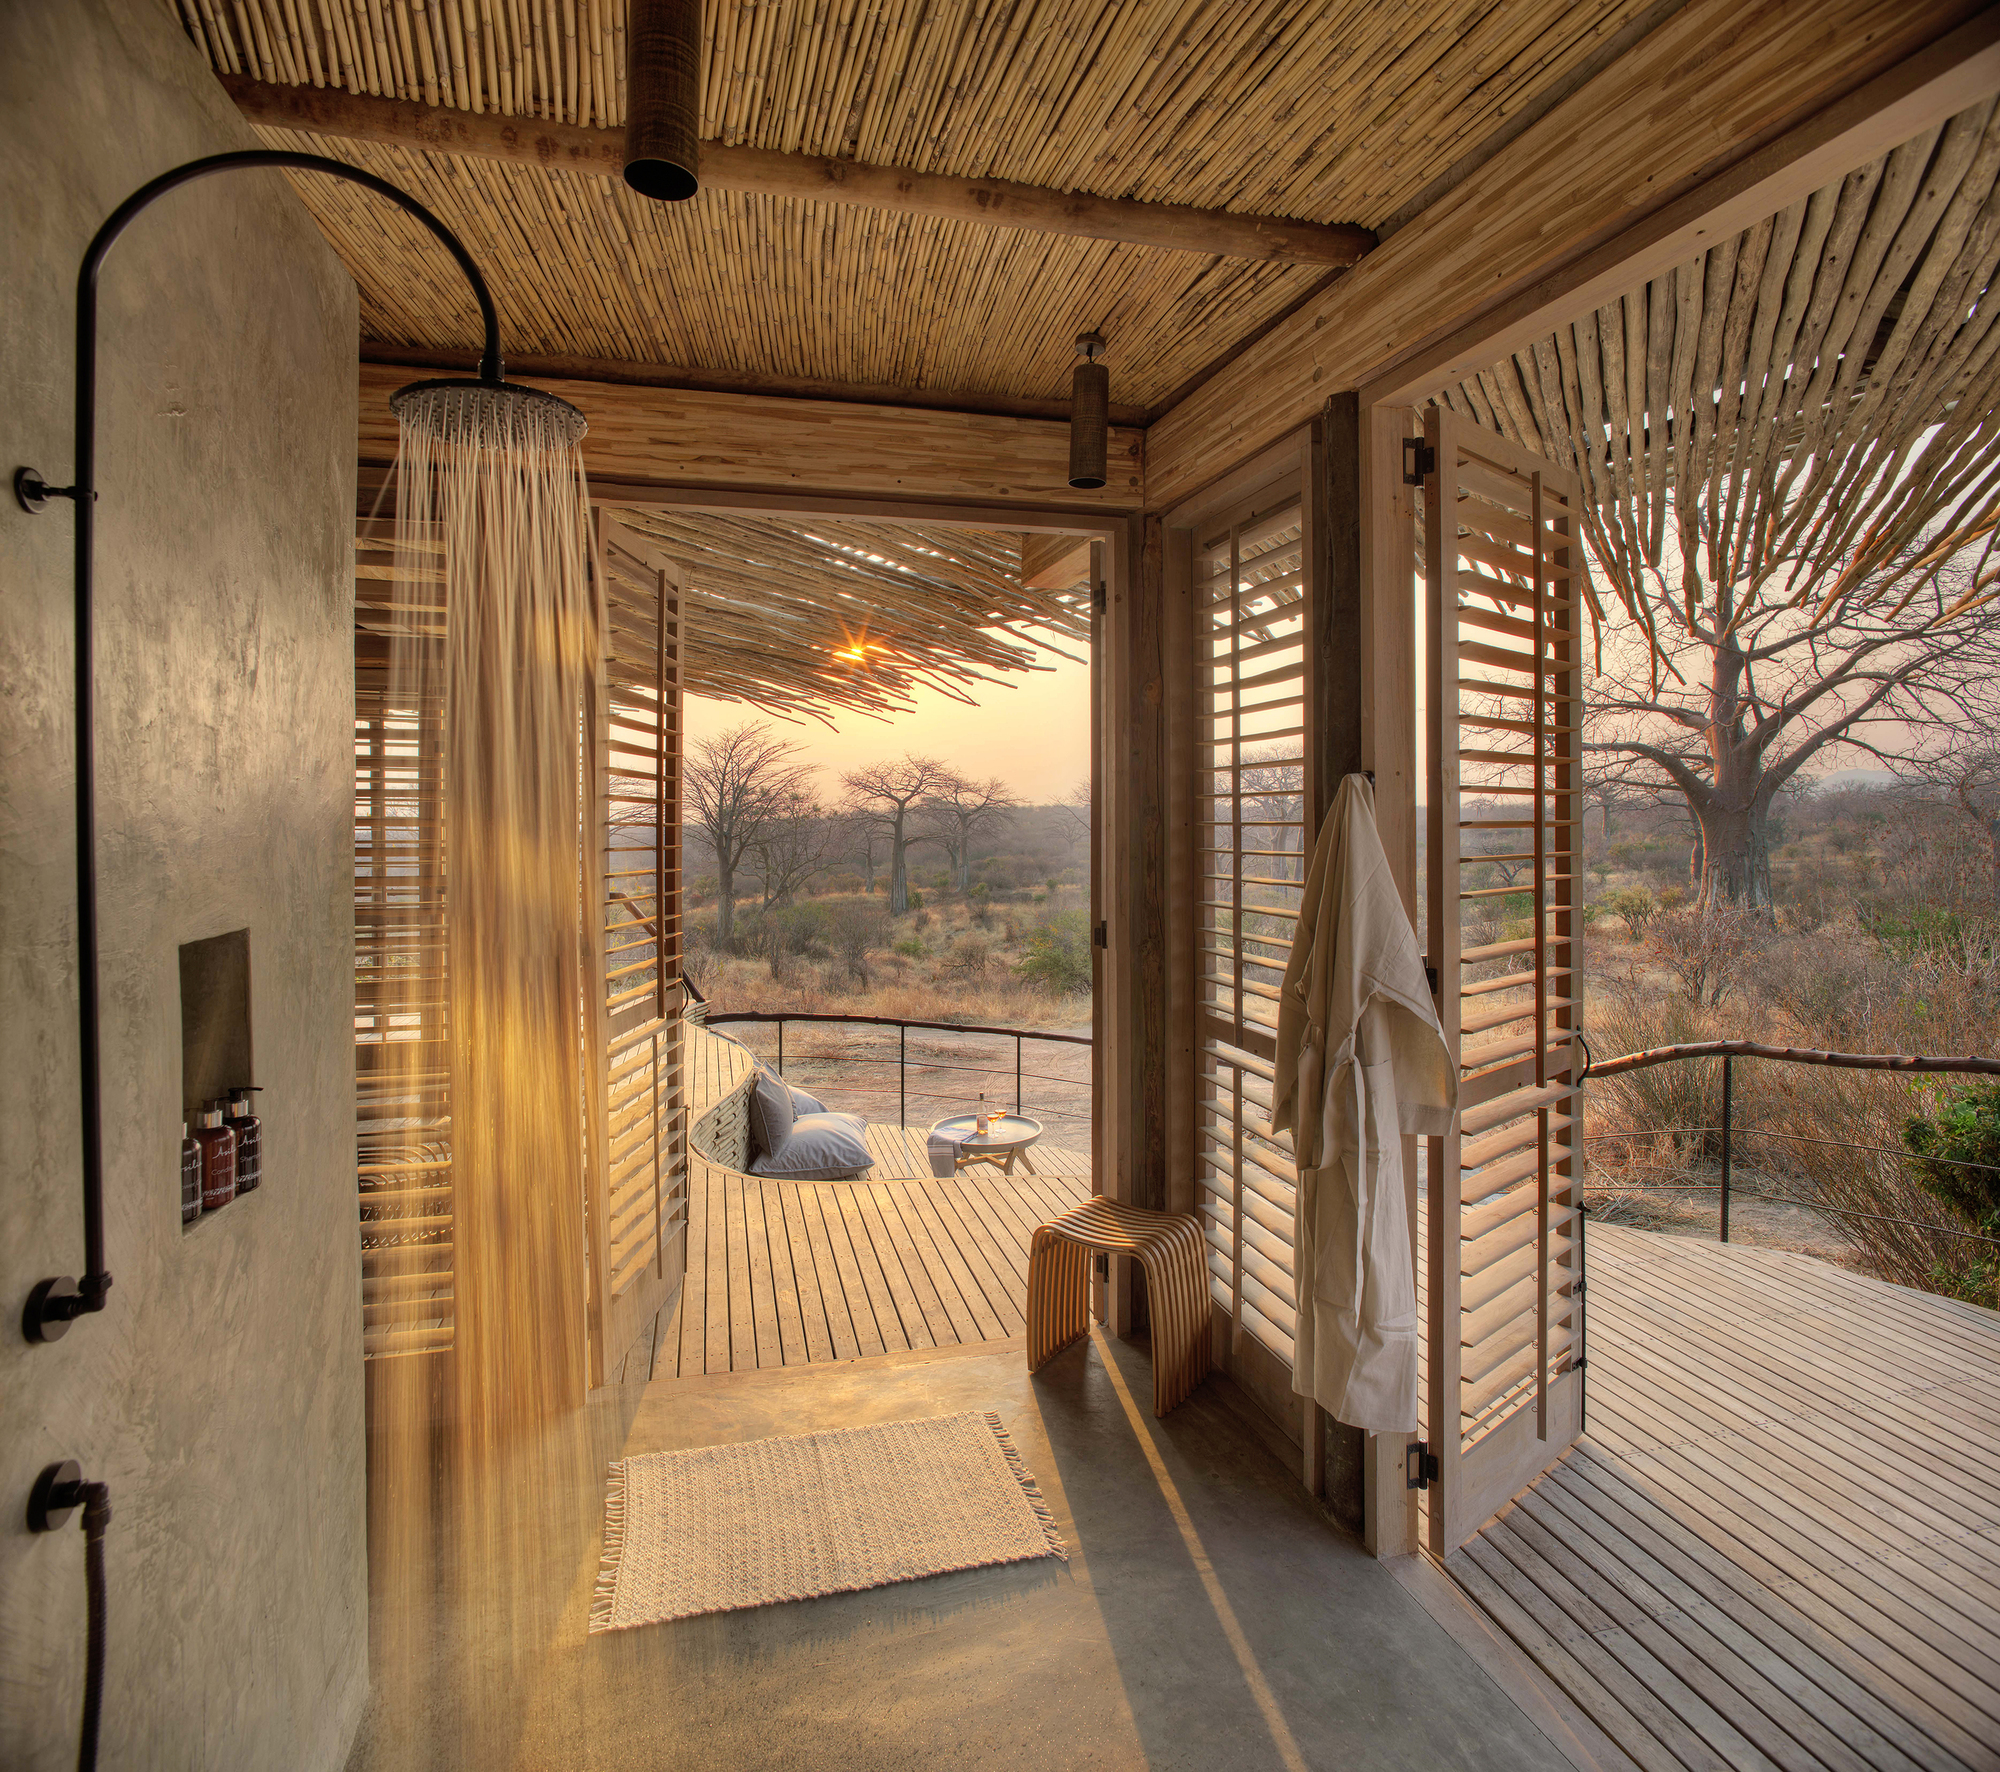 Open-shower-and-lodge-design-allows-you-to-live-within-the-confines-of-the-Serengeti